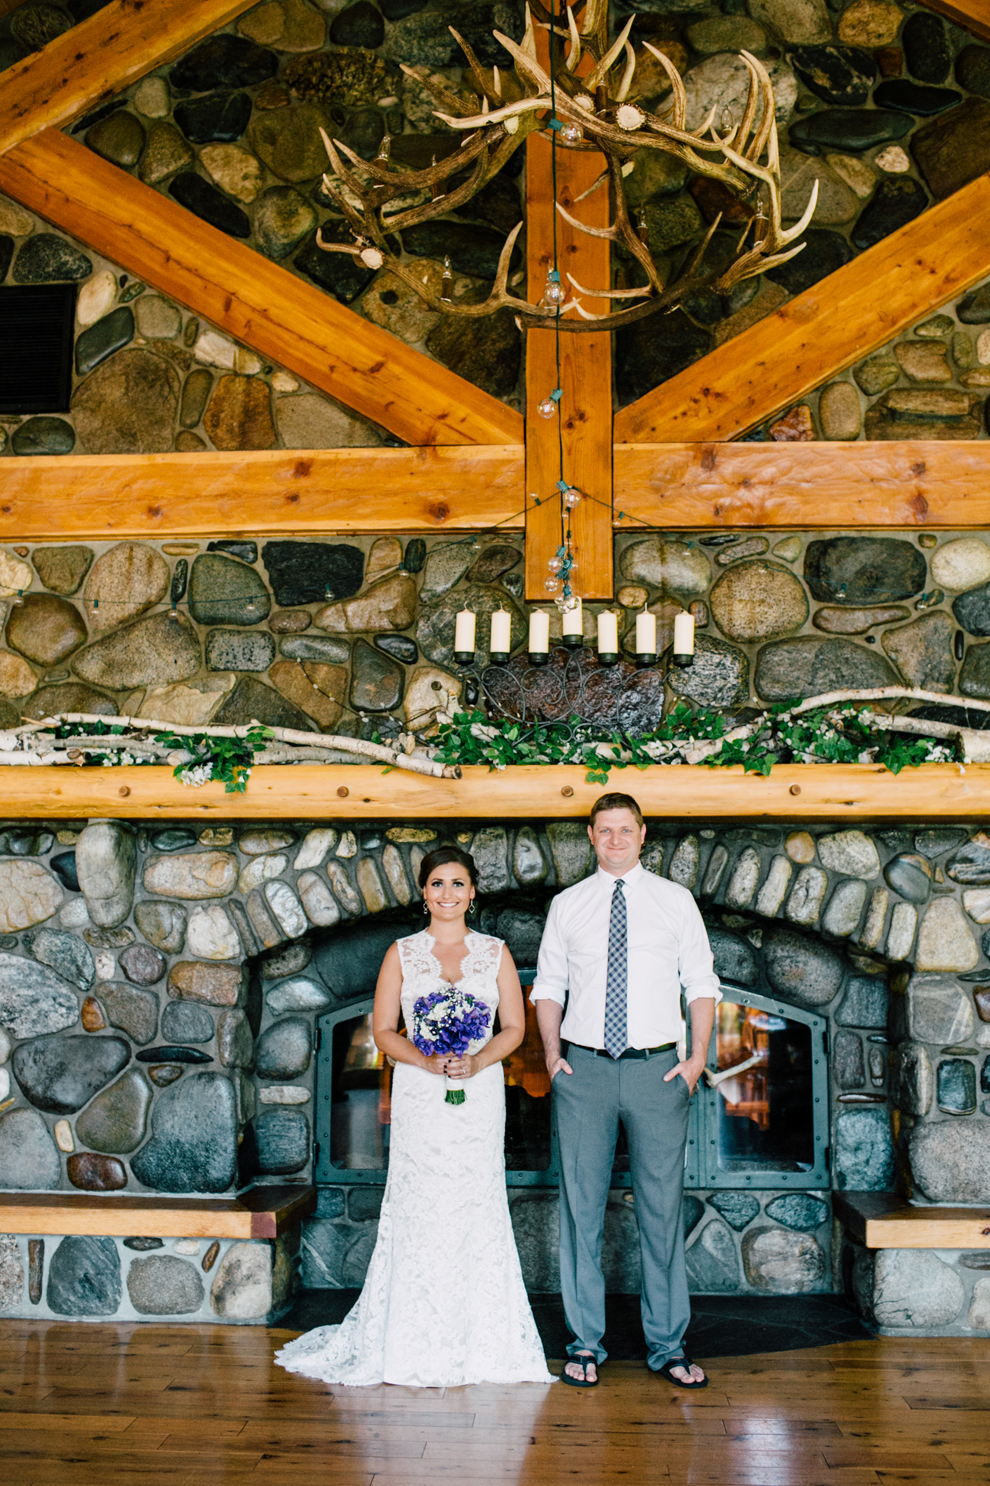 028-leavenworth-mountain-springs-lodge-wedding-karena-saul-katheryn-moran-photography.jpg